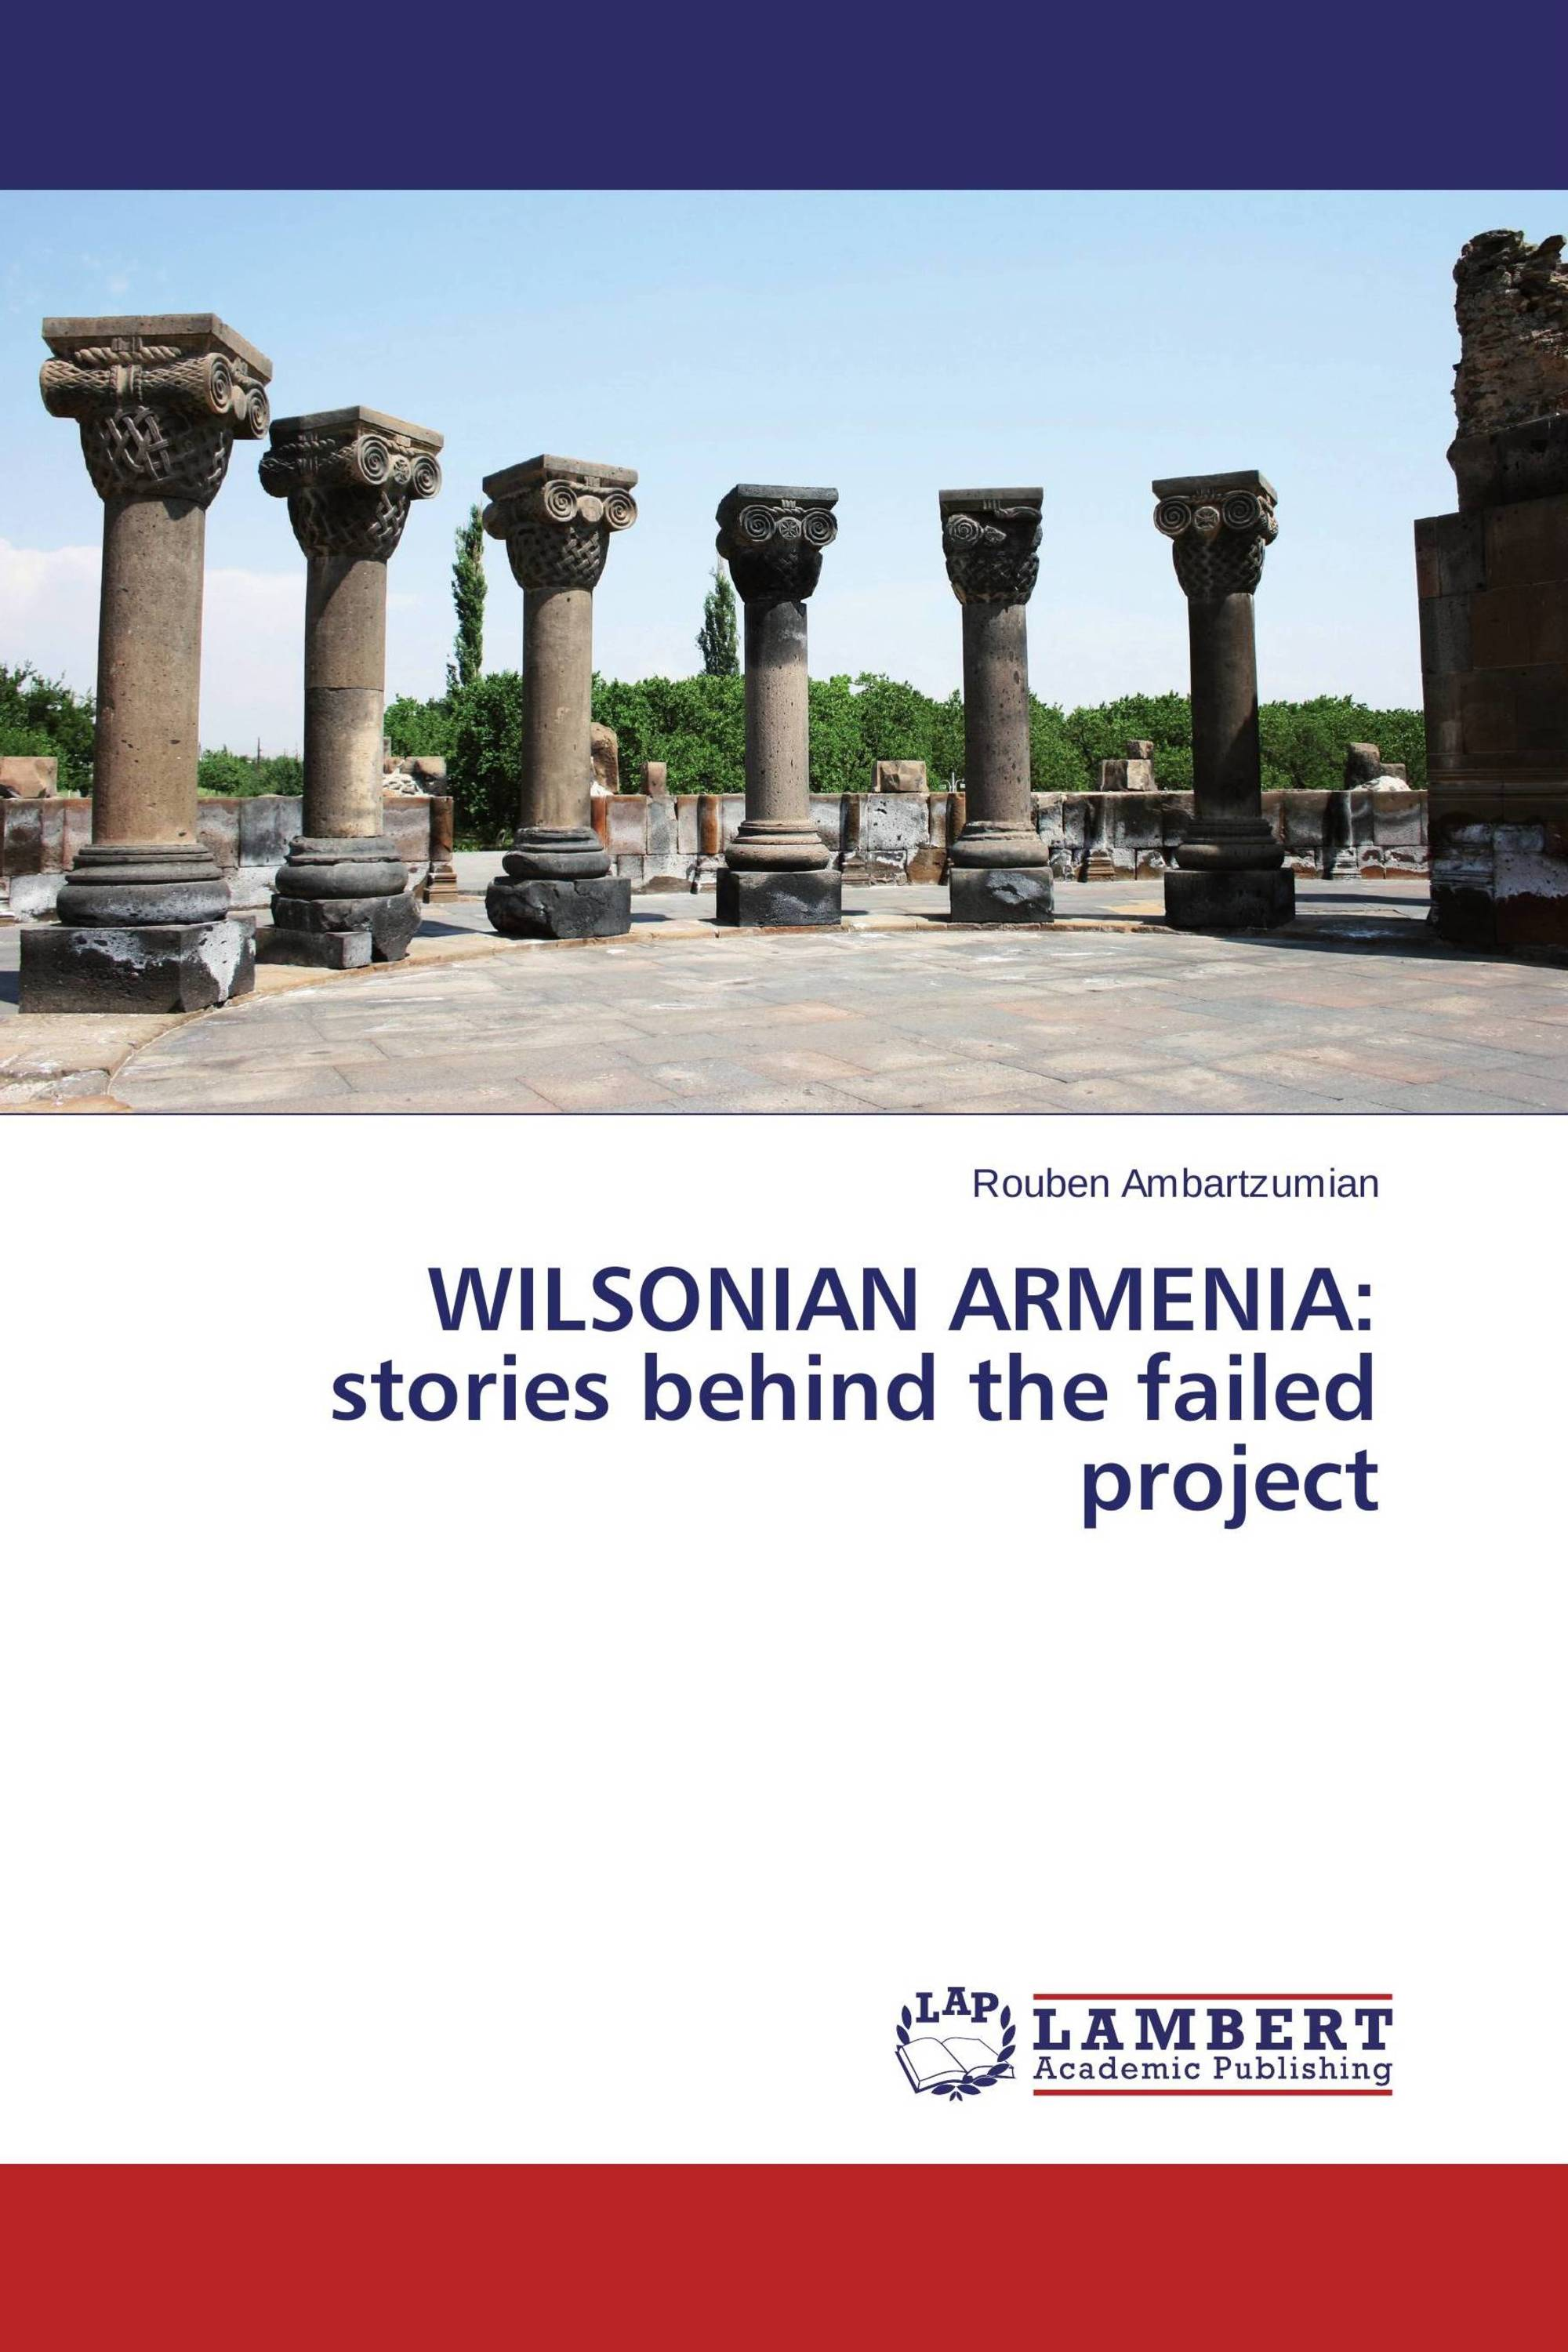 WILSONIAN ARMENIA: stories behind the failed project